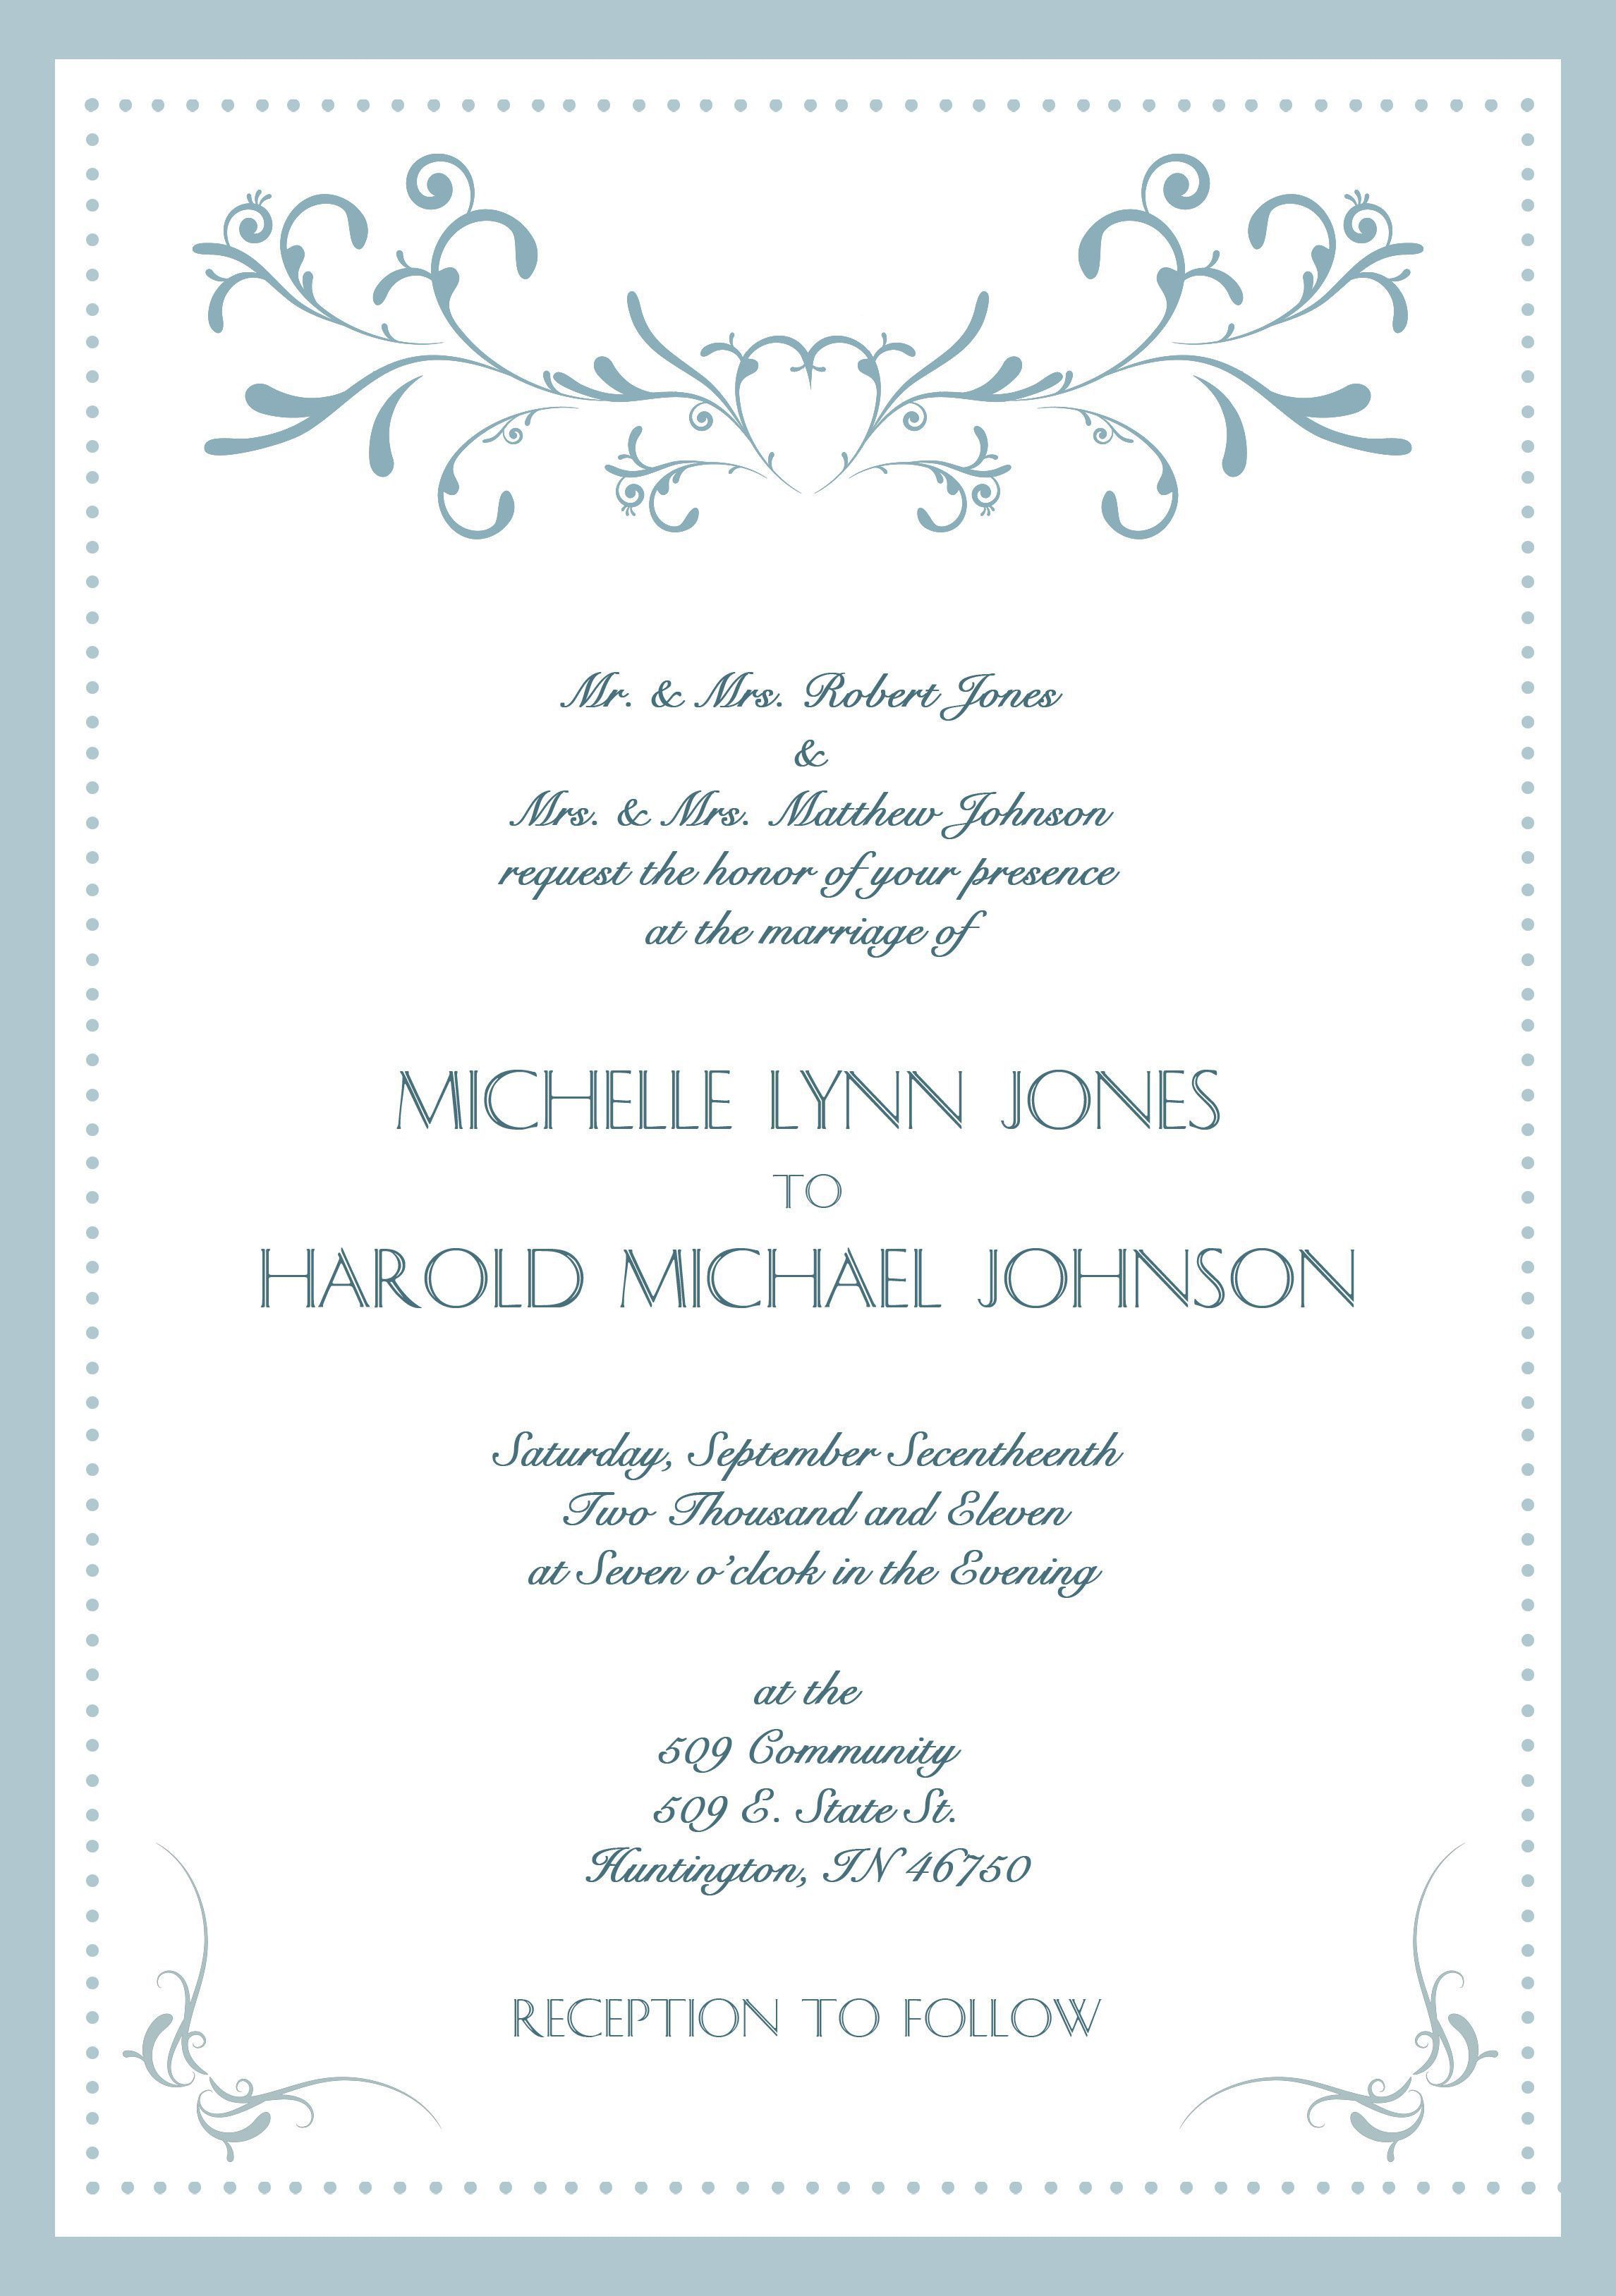 Samples of wedding invitations cards wedding invitations cards samples of wedding invitations cards wedding invitations cards wording invitation cards wedding photo samples of stopboris Gallery